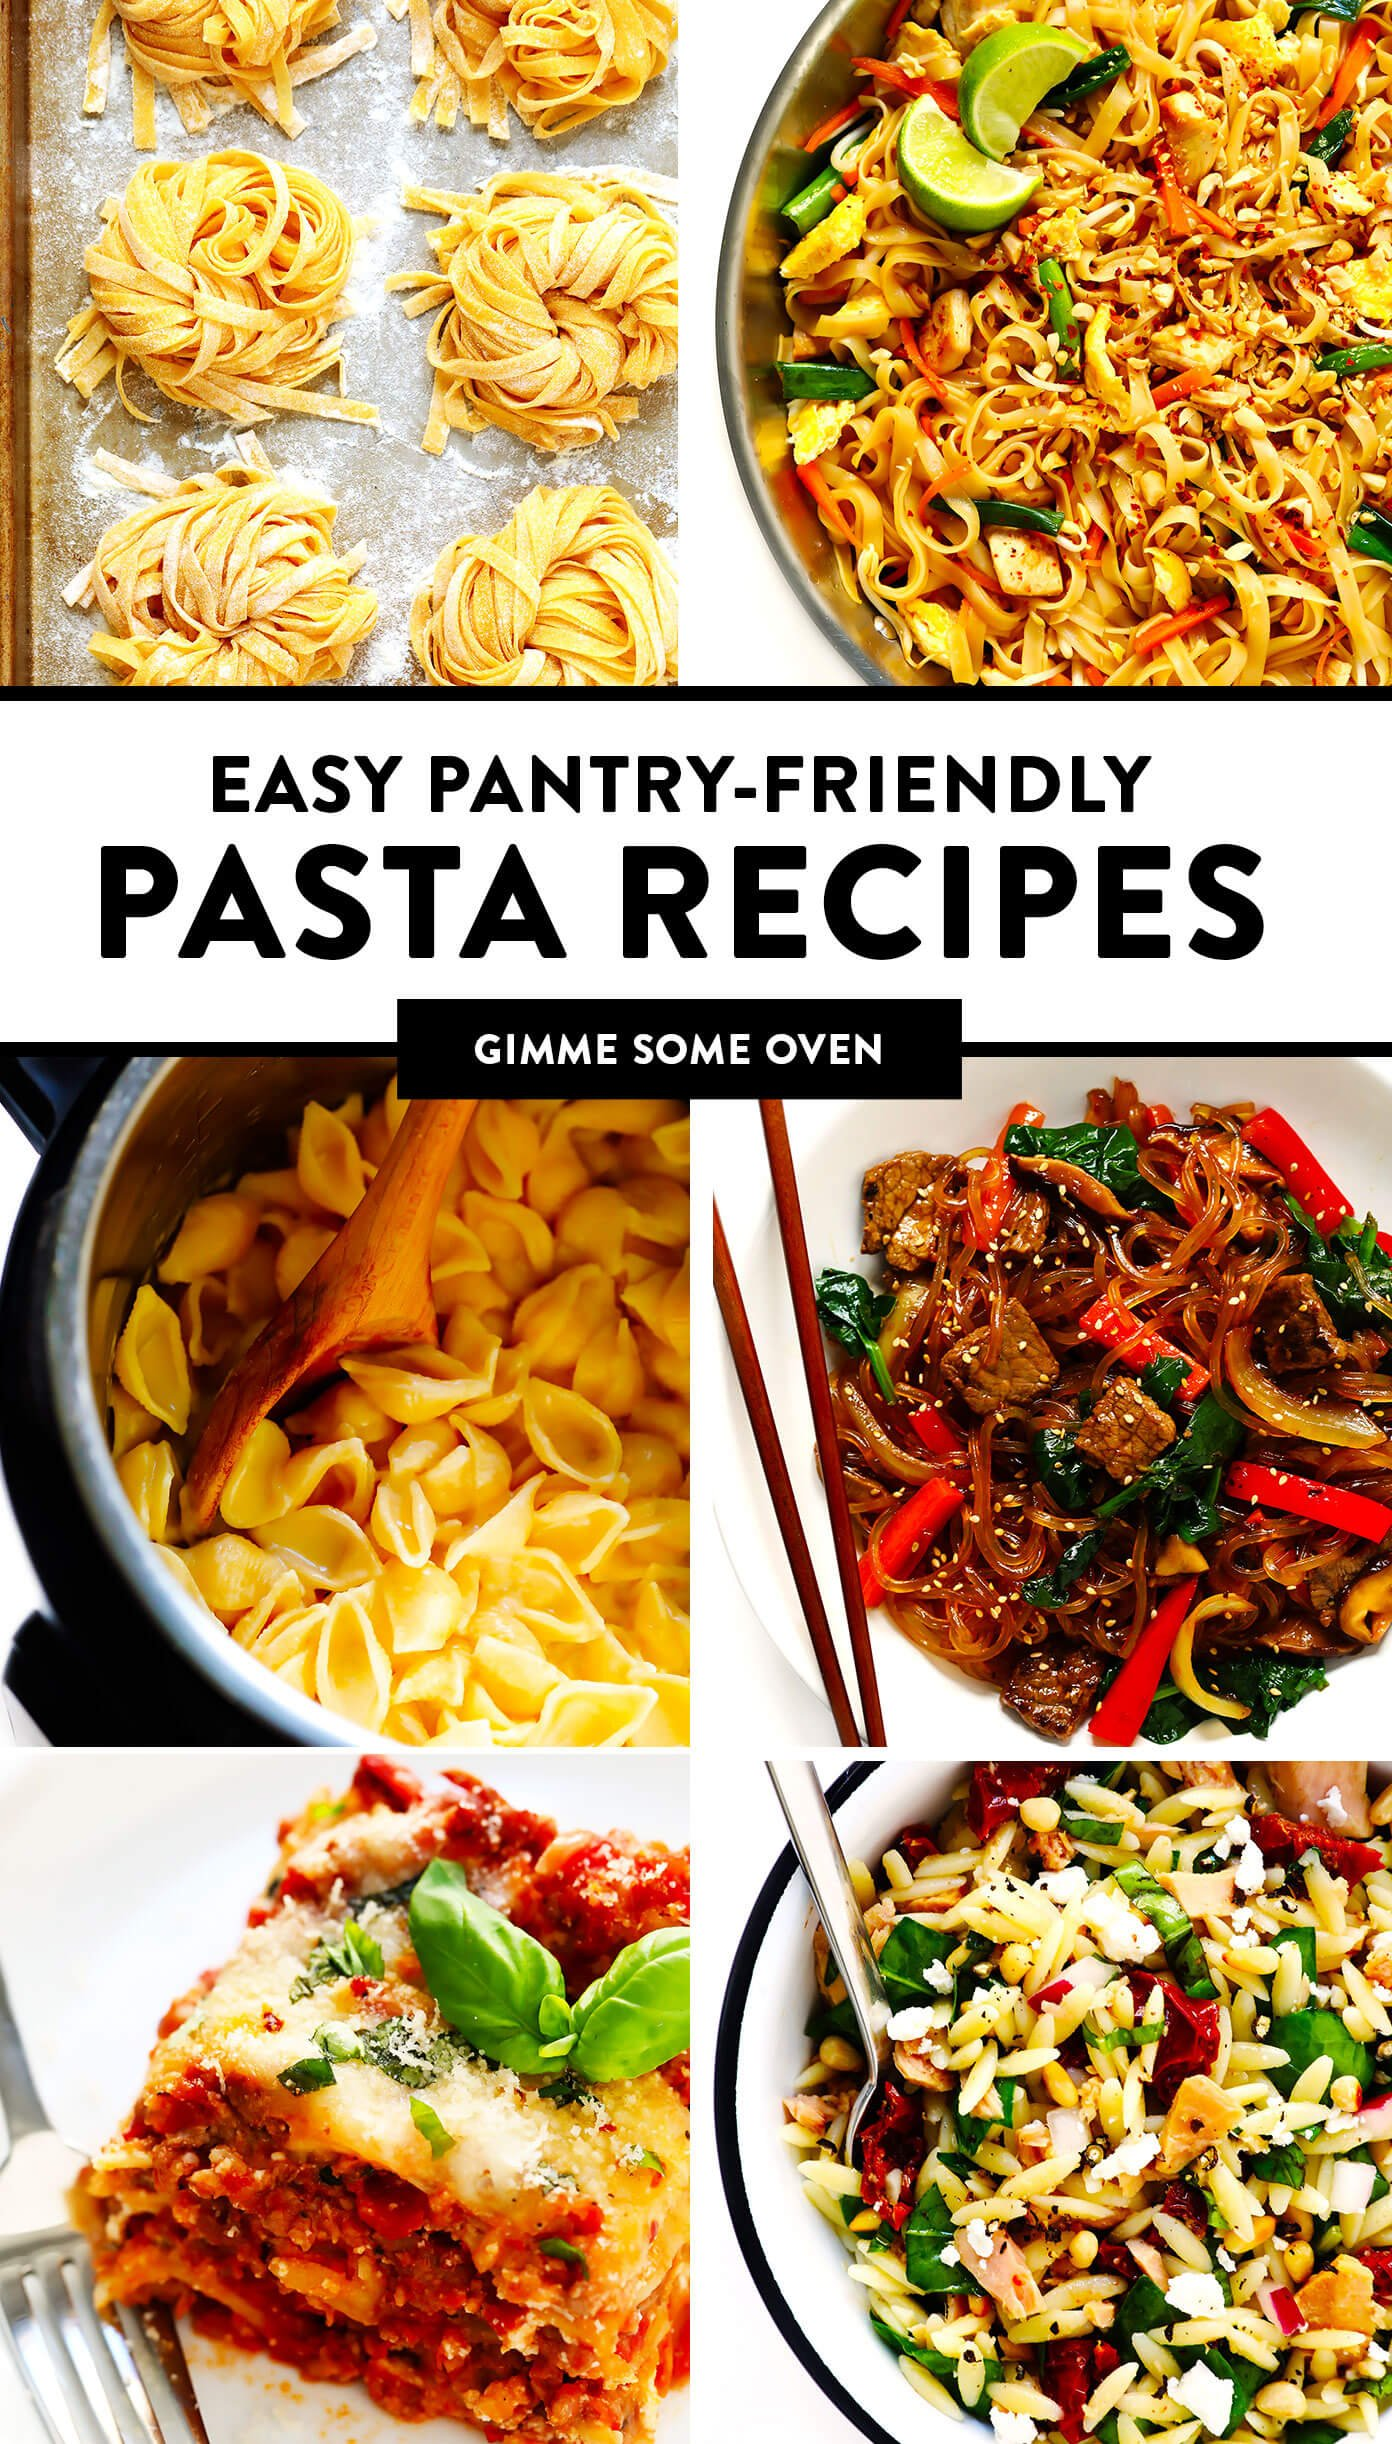 Easy Pantry-Friendly Pasta Recipes